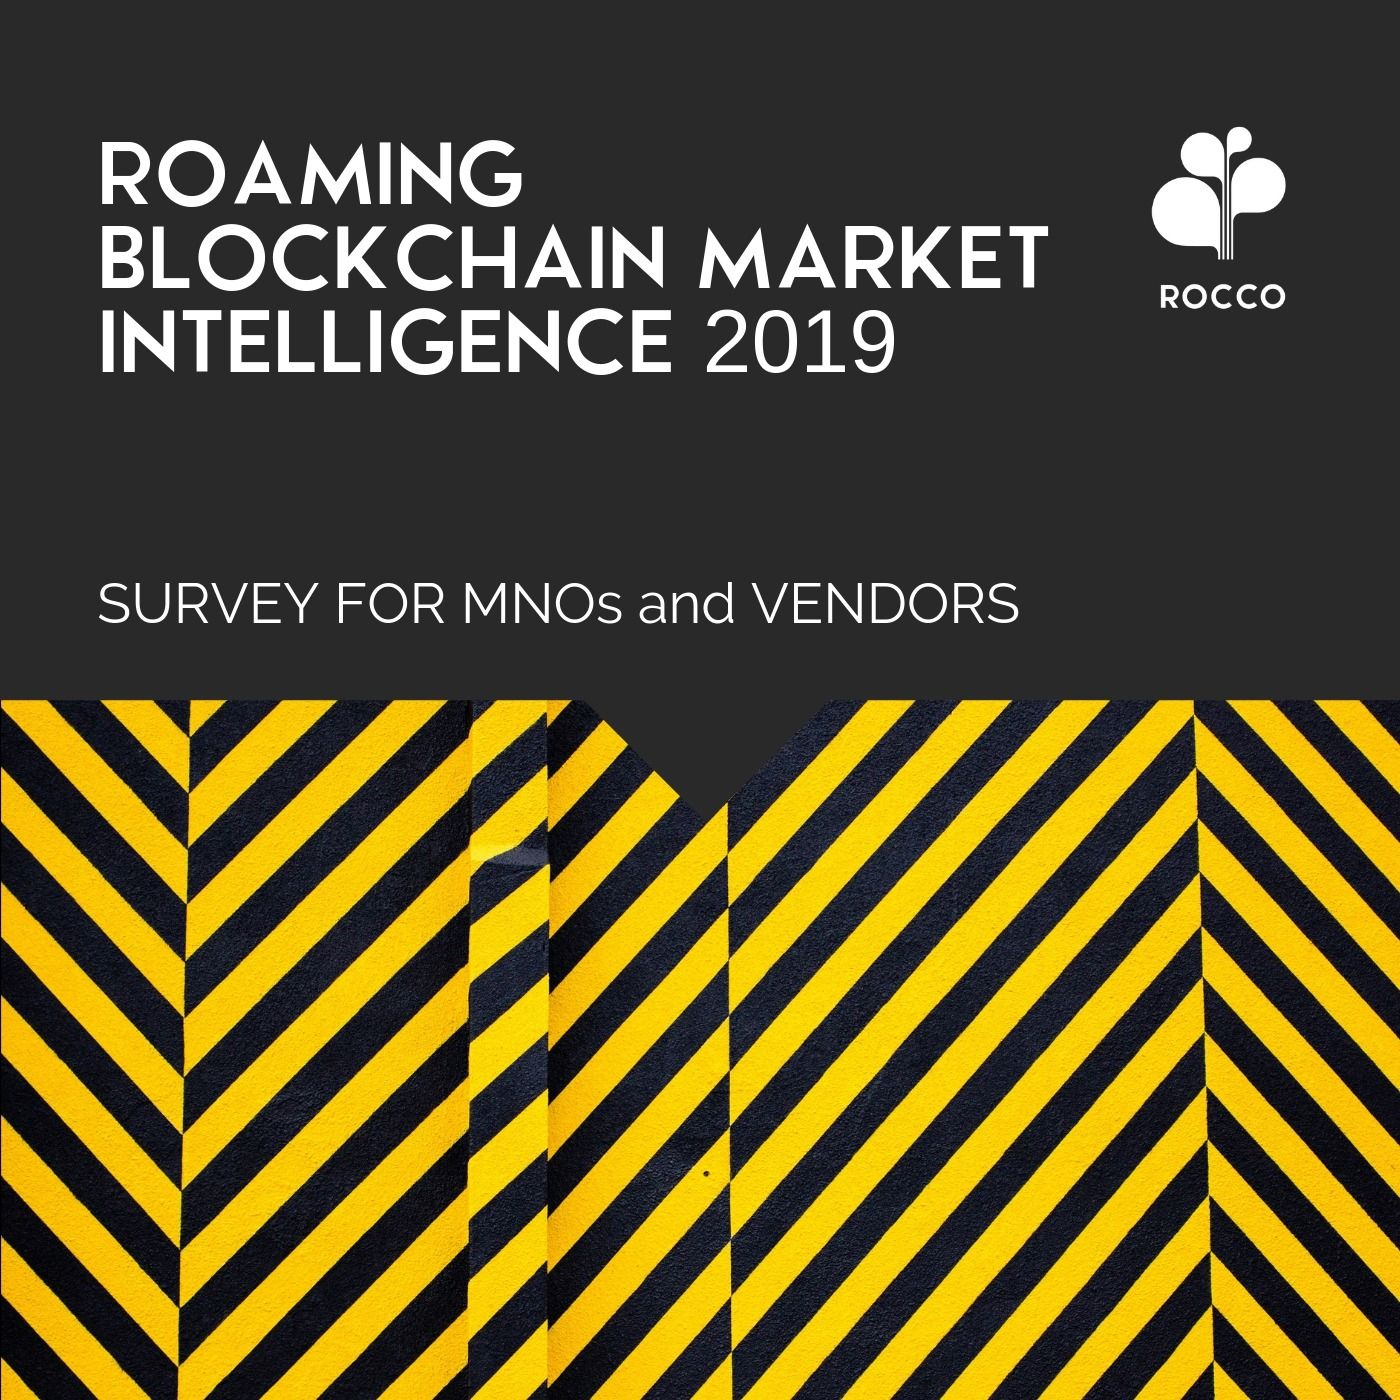 LAUNCH: Roaming Blockchain Market Intelligence Research